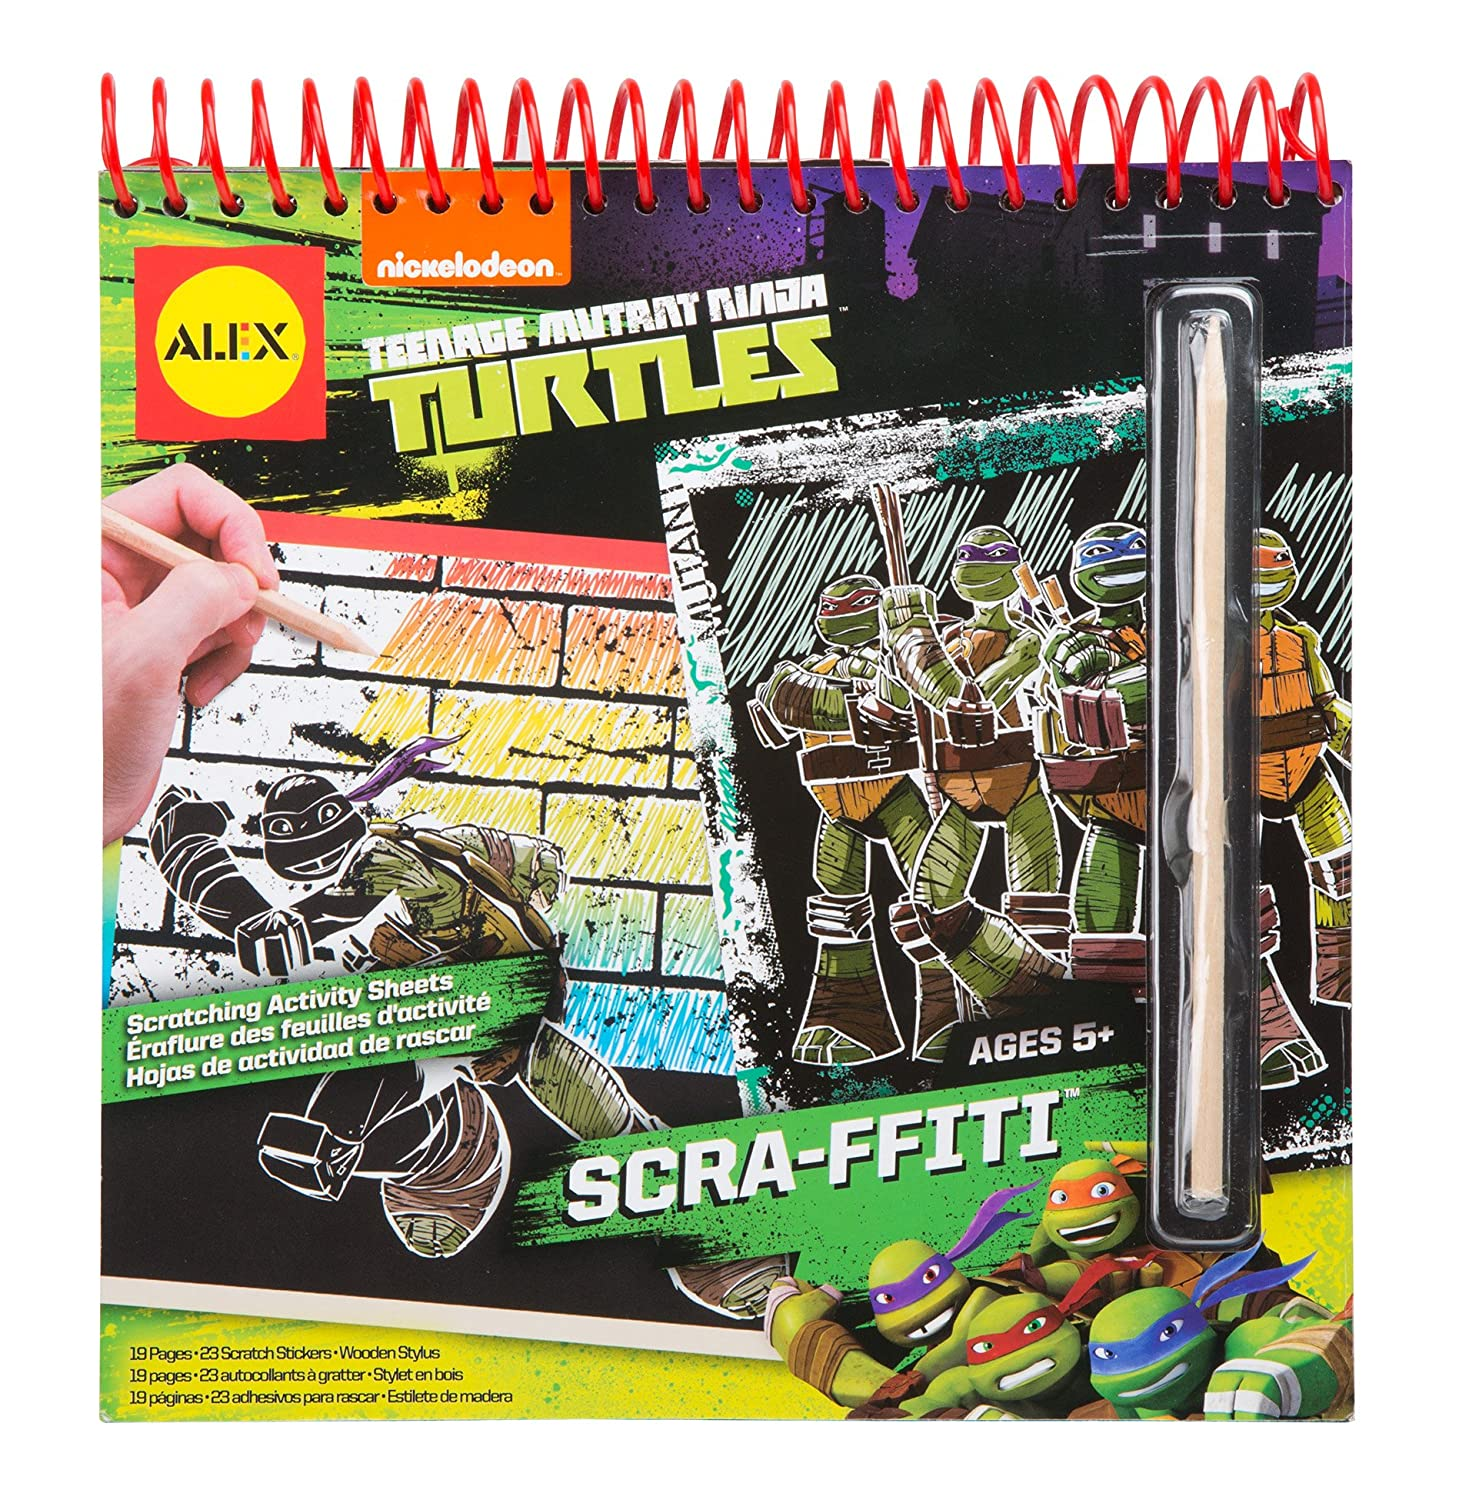 Amazon.com: Teenage Mutant Ninja Turtles Scra-ffiti Scratch Art ...